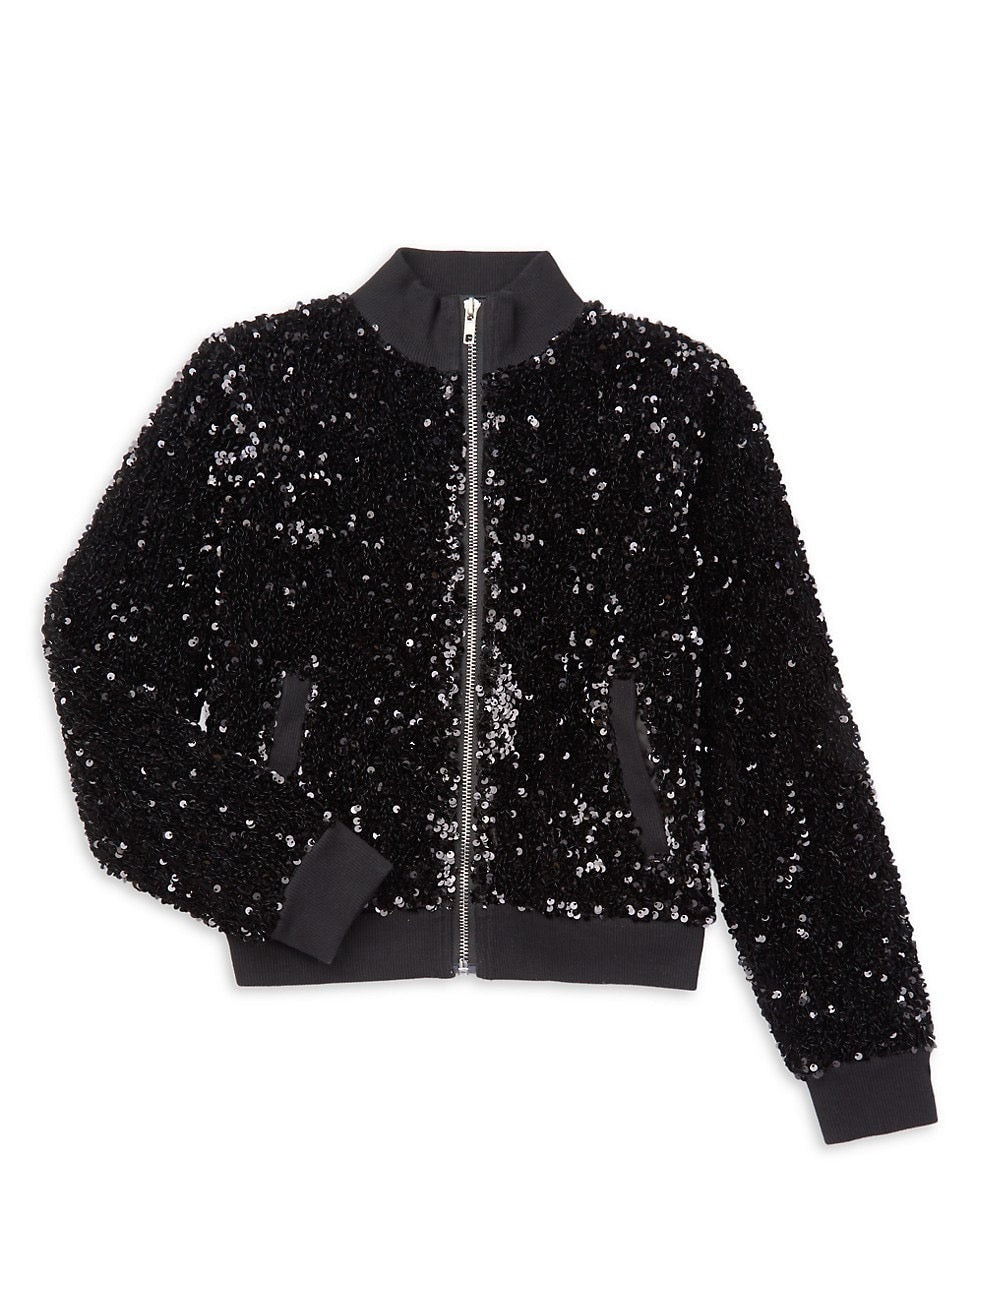 MIA Lux Sequin Jacket